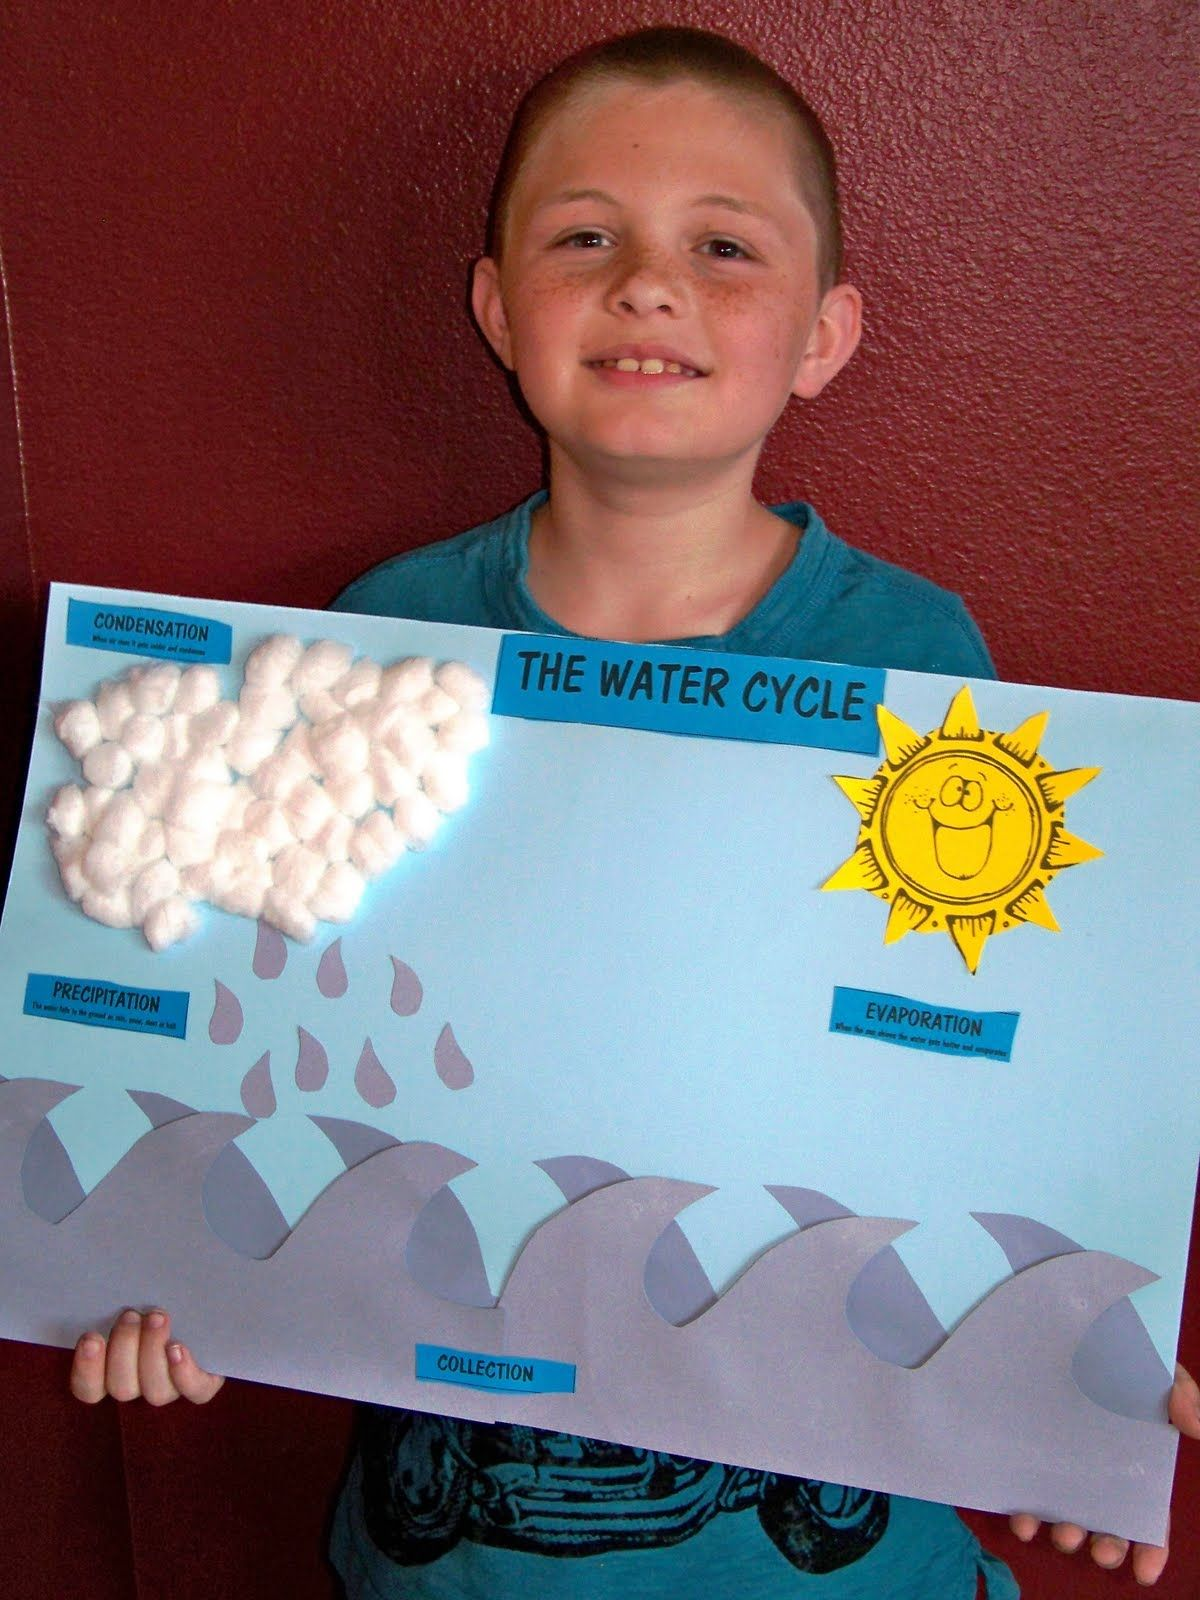 37 Awesome Water Project For School Images